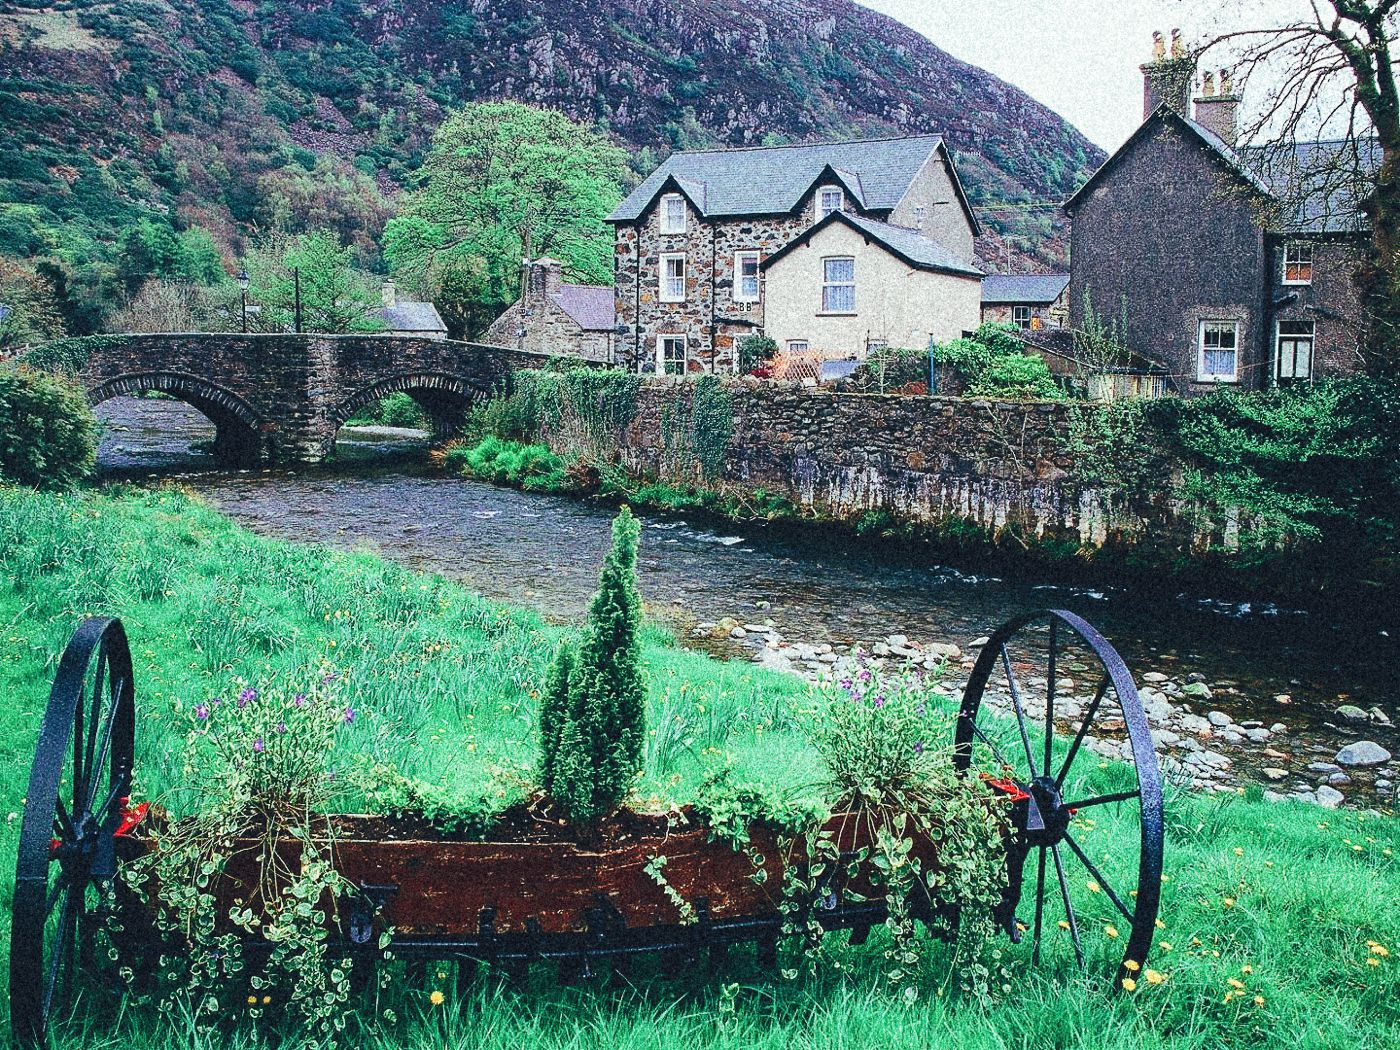 17 Of The Most Beautiful Villages To Visit In Britain! (2)